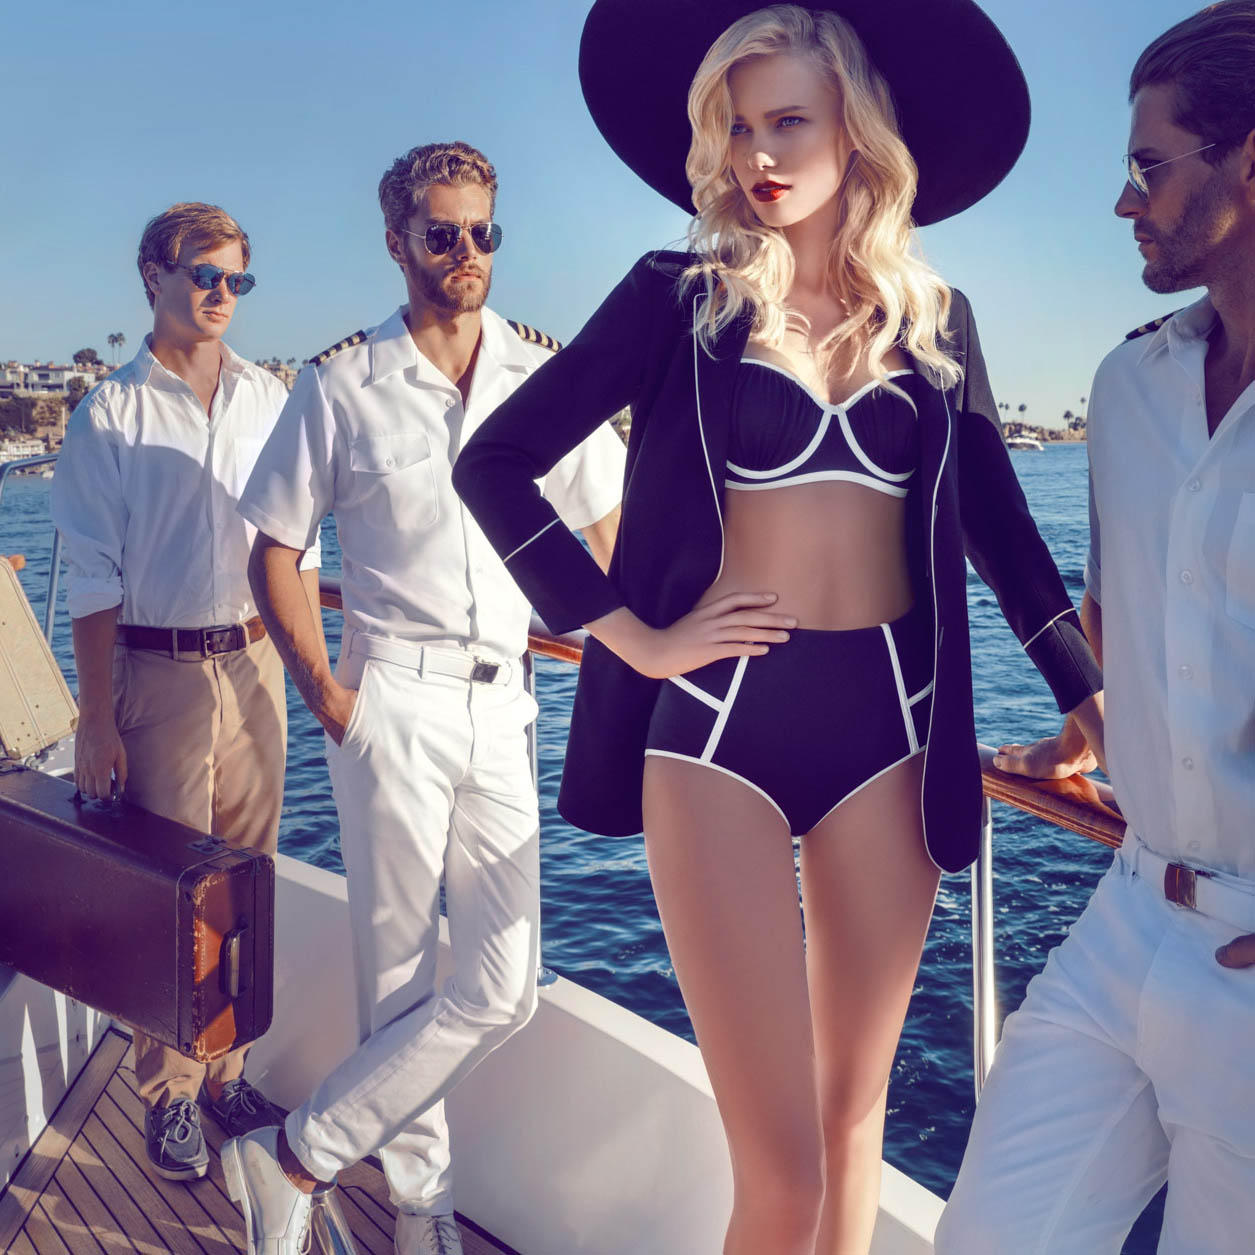 Up to 40% off Best Swimwear Styles On Sale @ Eve's Temptation